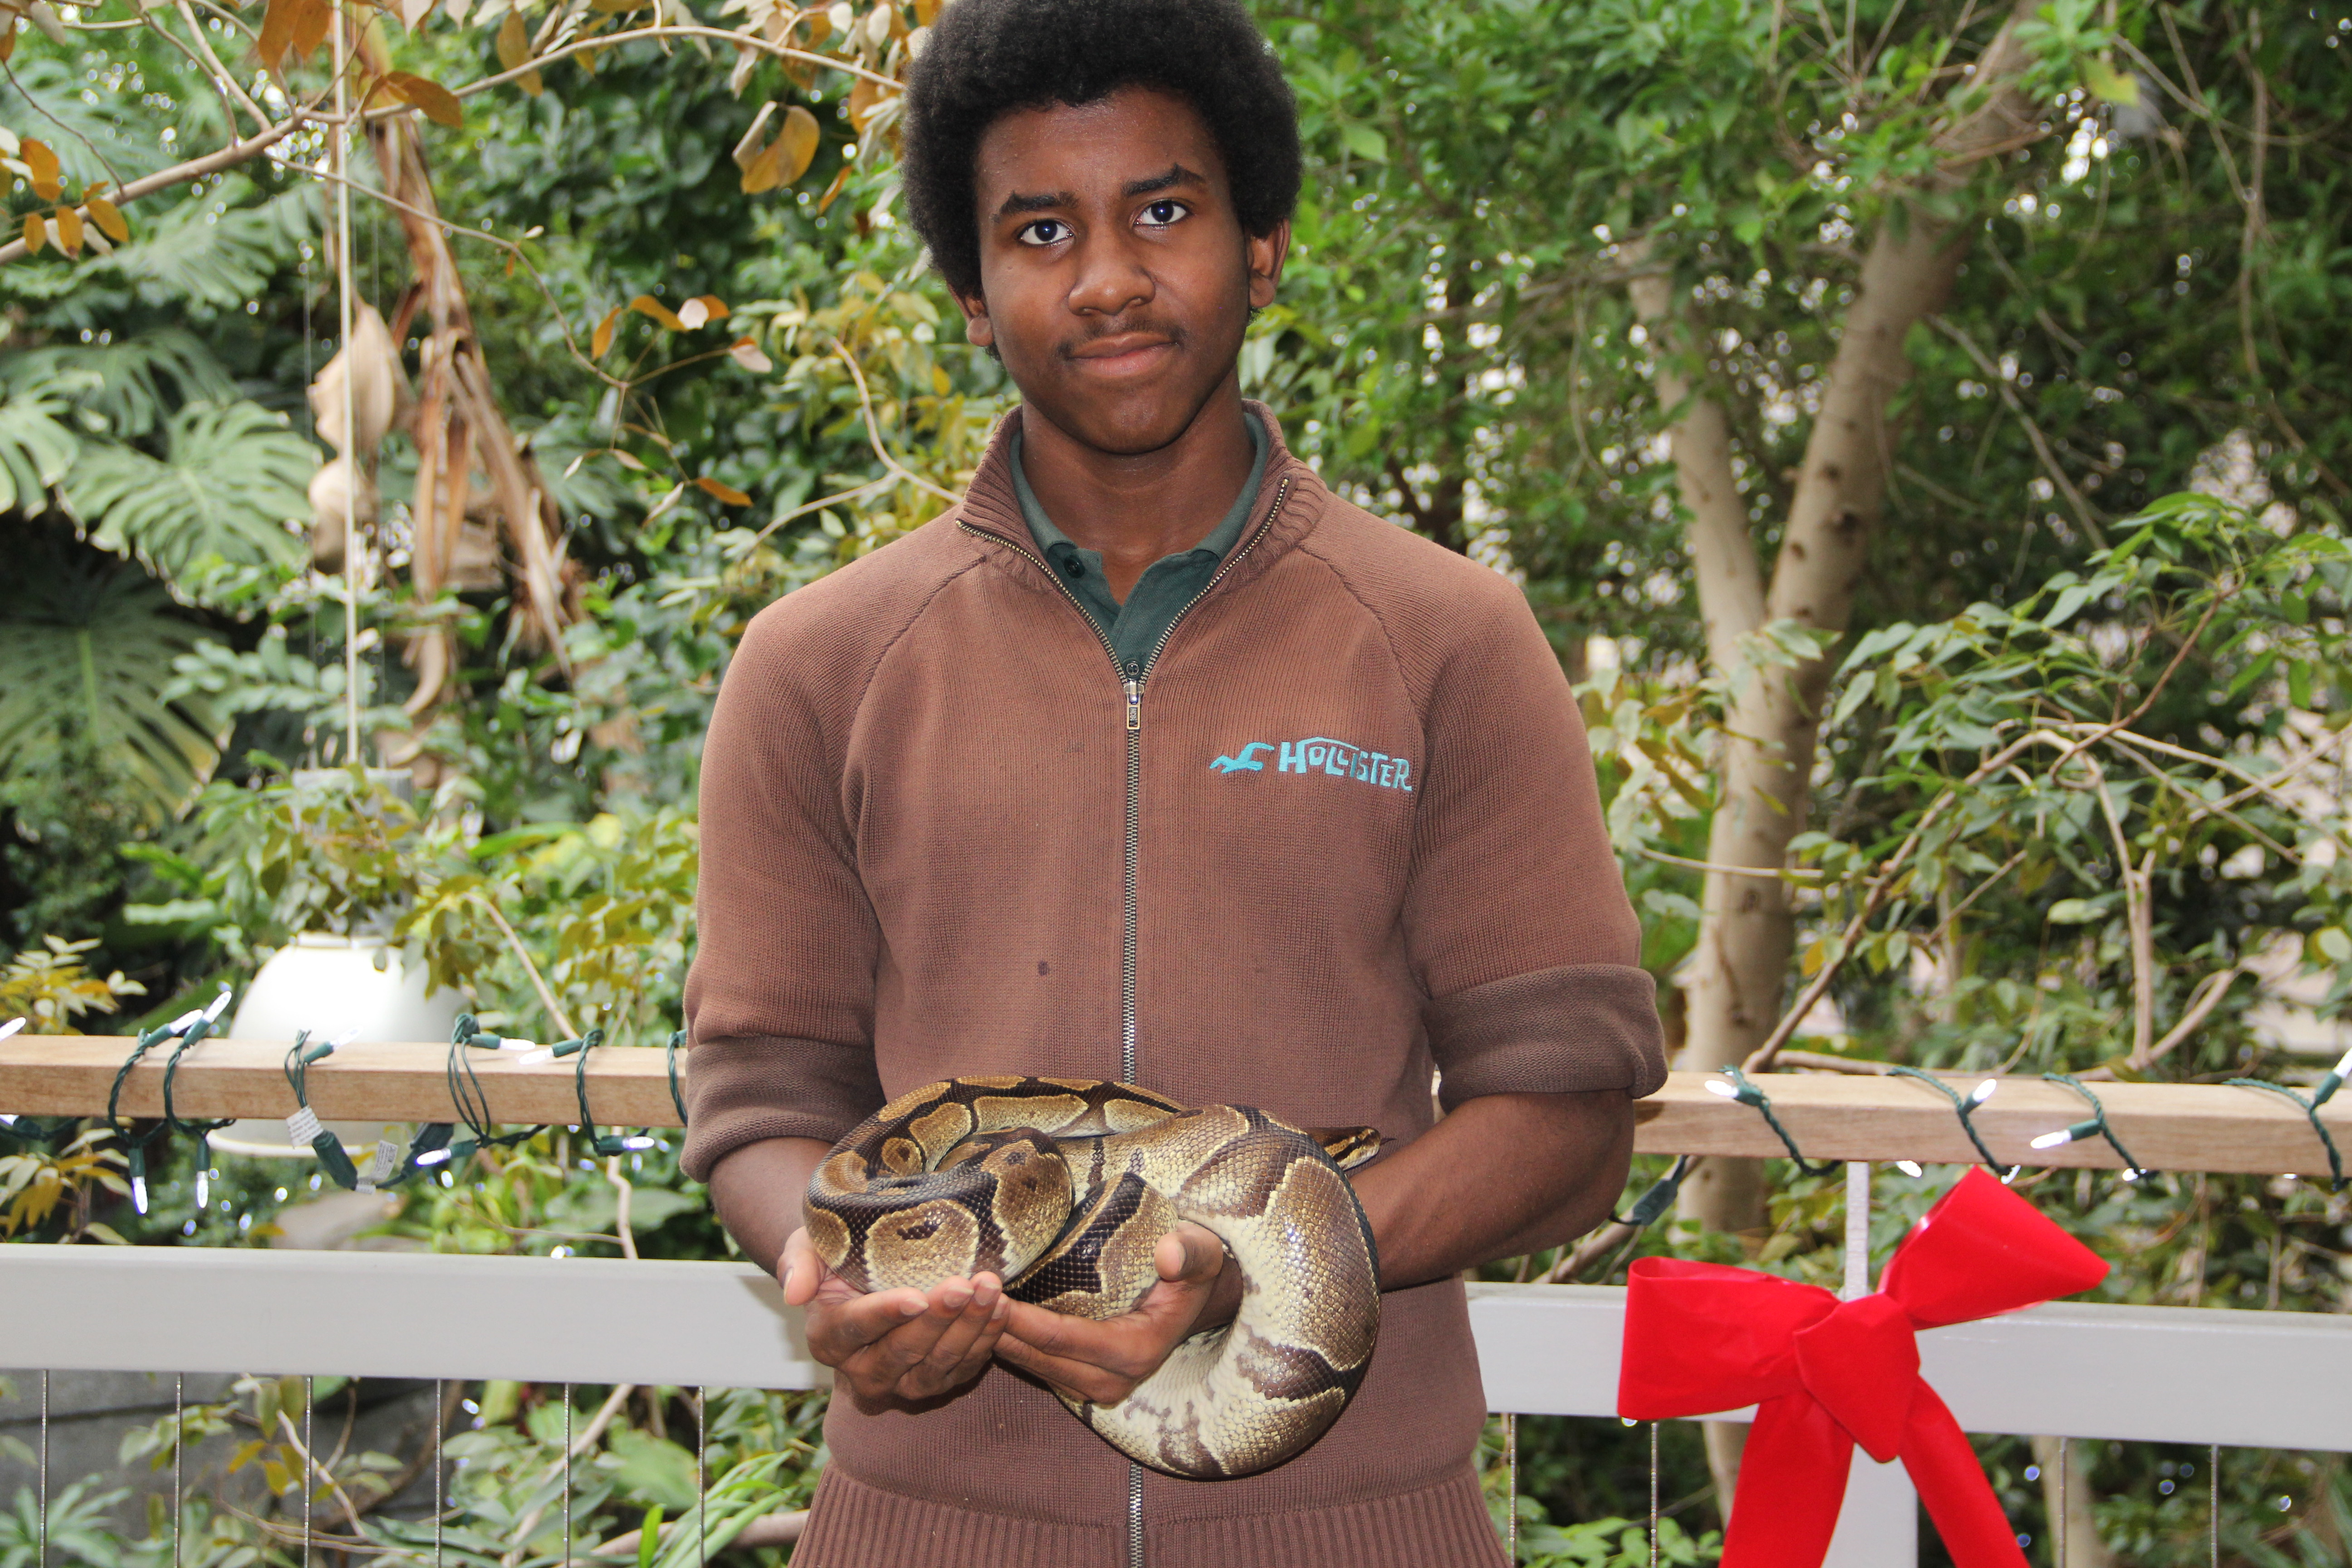 Here I am handling a ball python